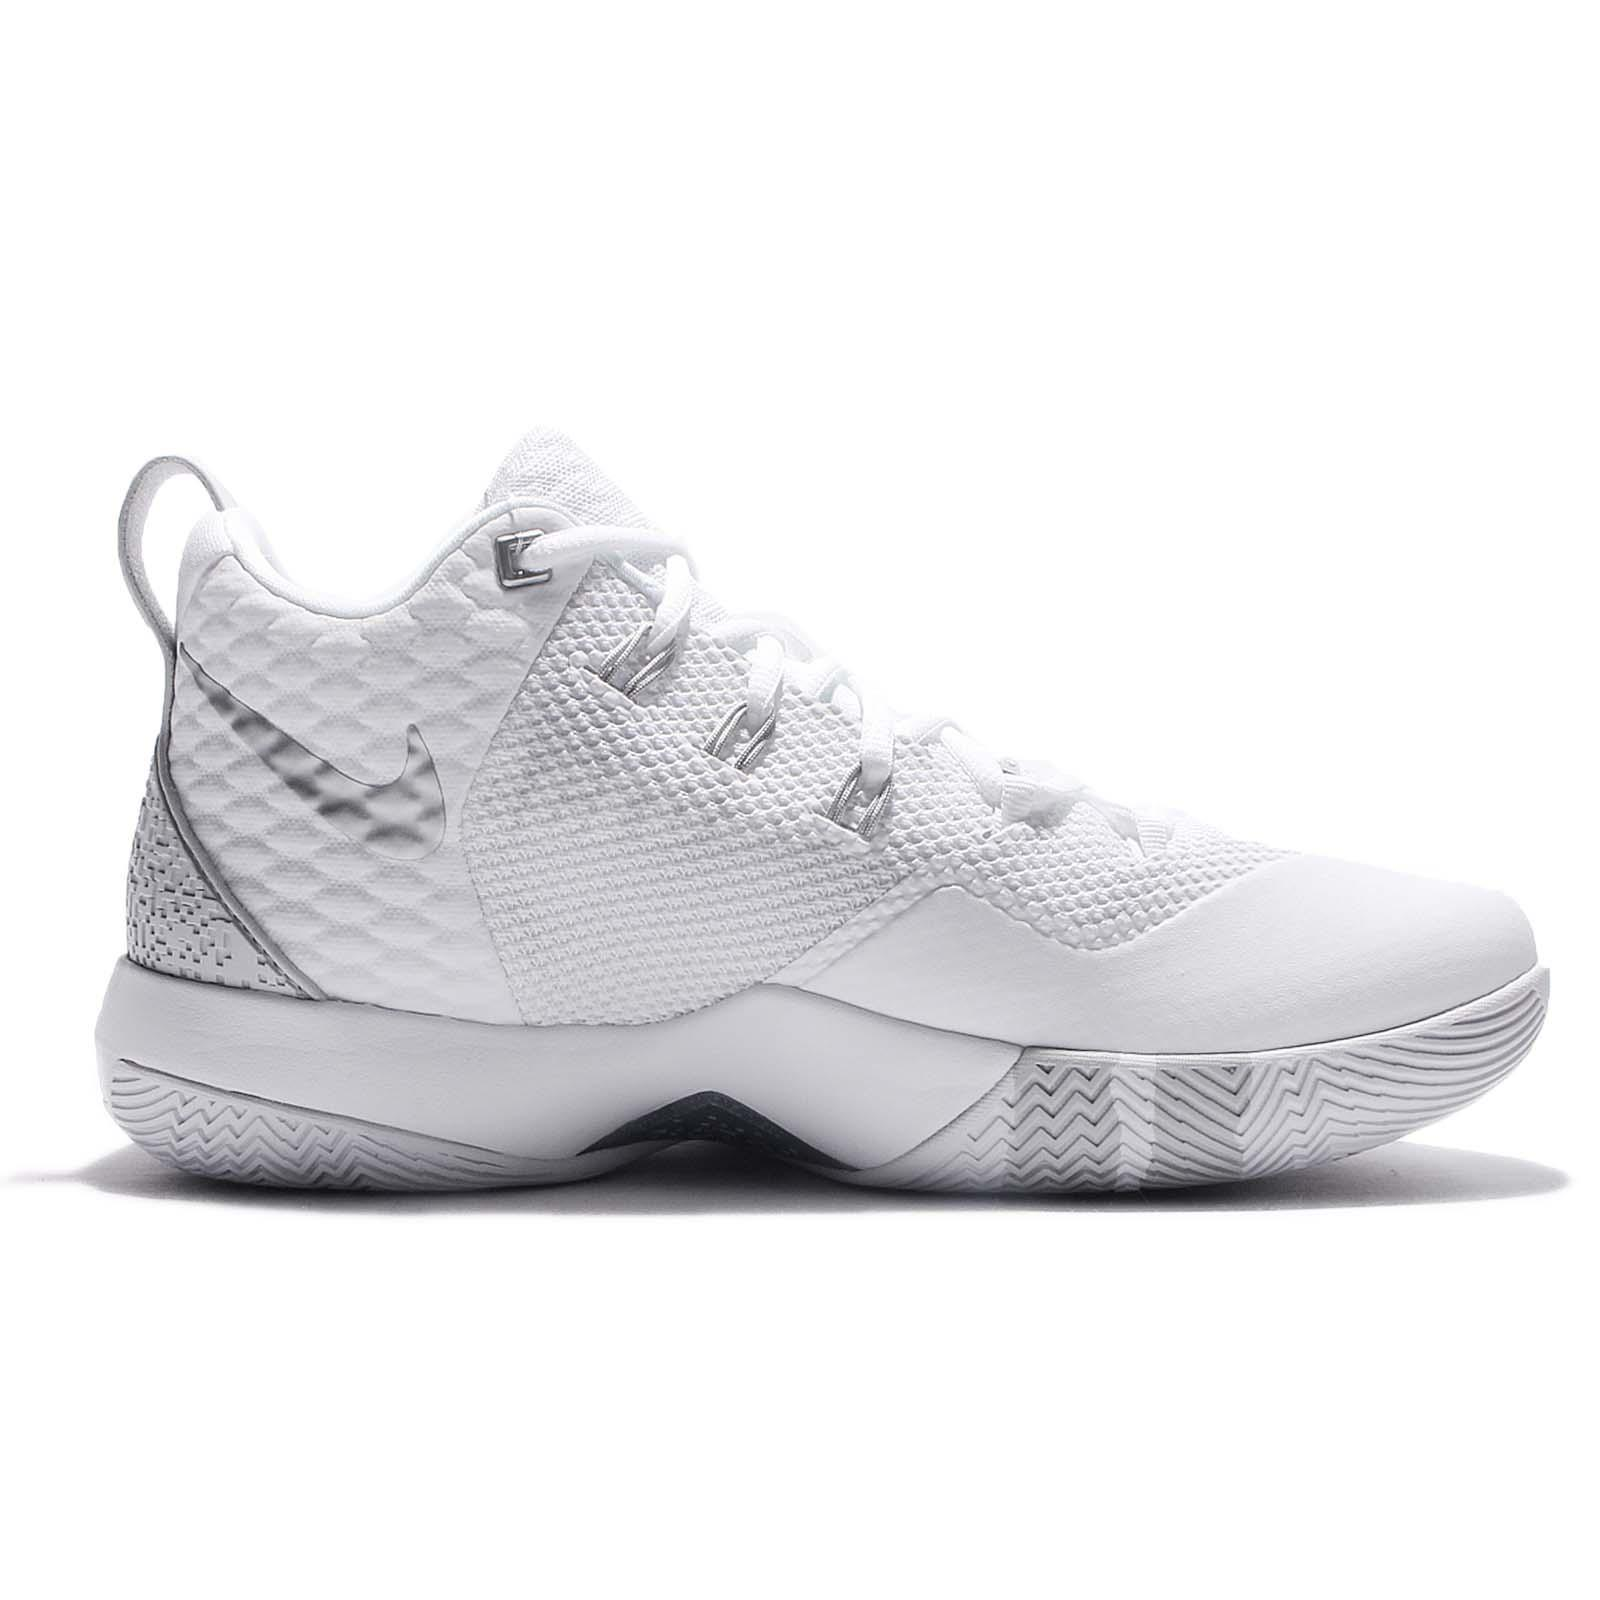 f8f04682518d usa silver red womens nike lebron ambassador 9 shoes cd26c 7f1e2